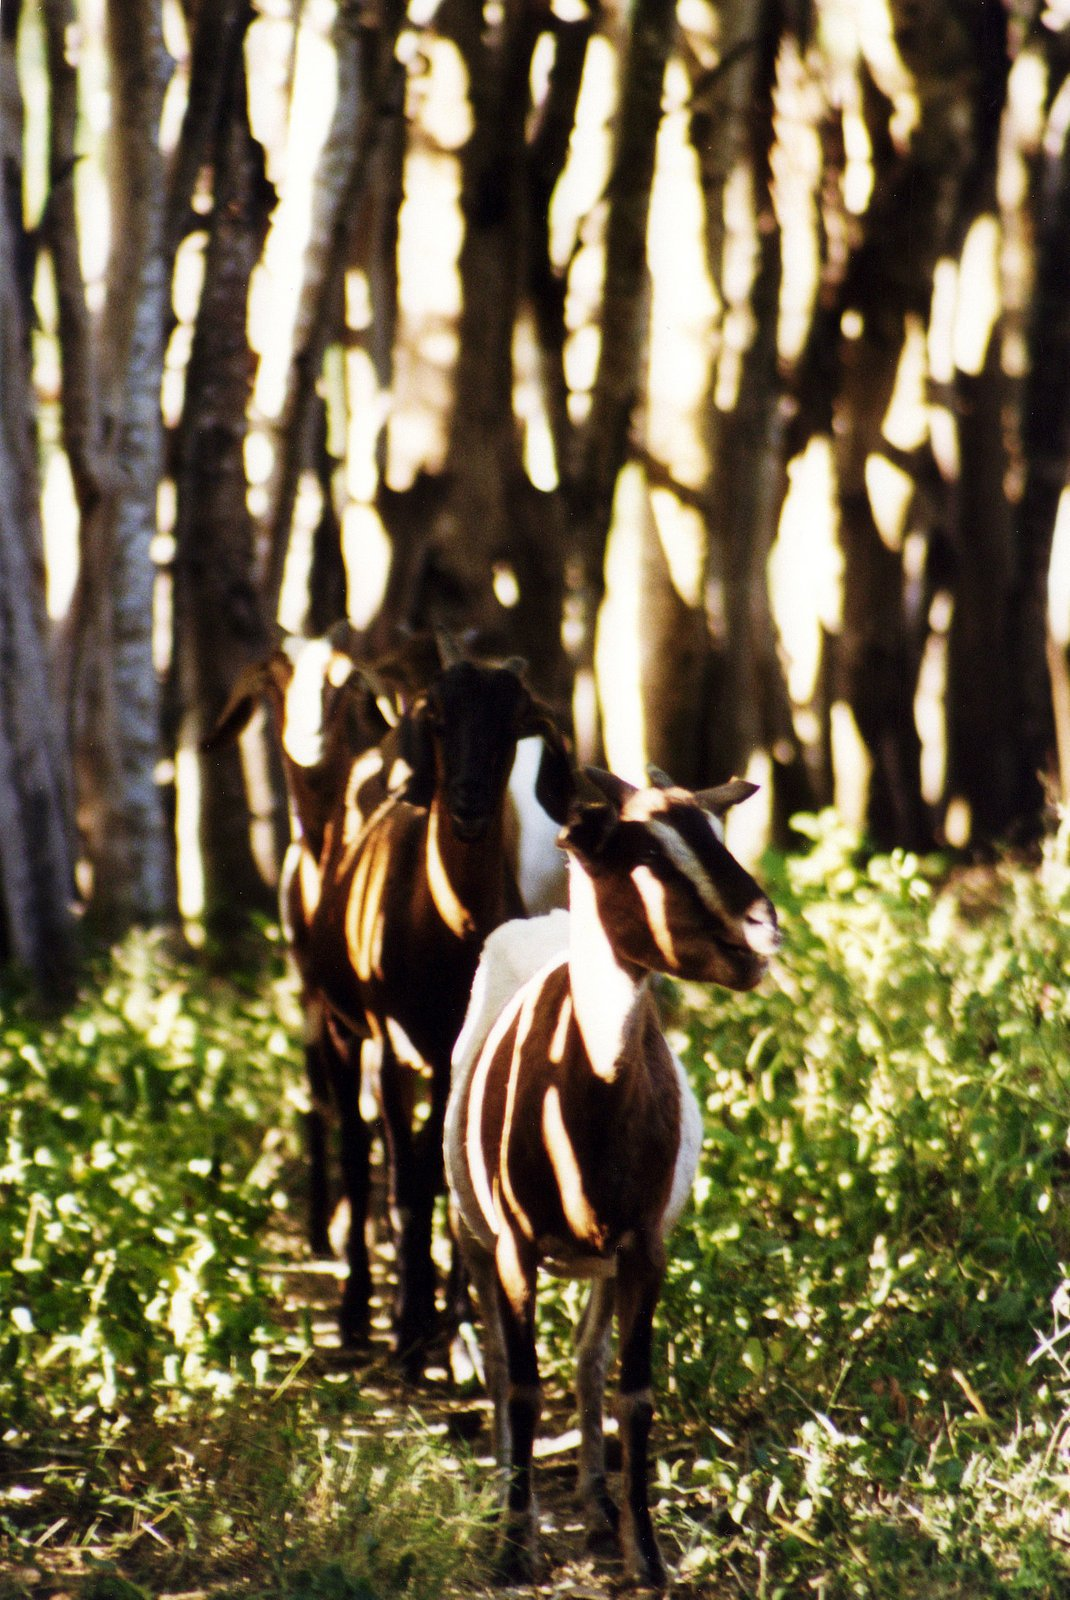 Goats and tree shadows